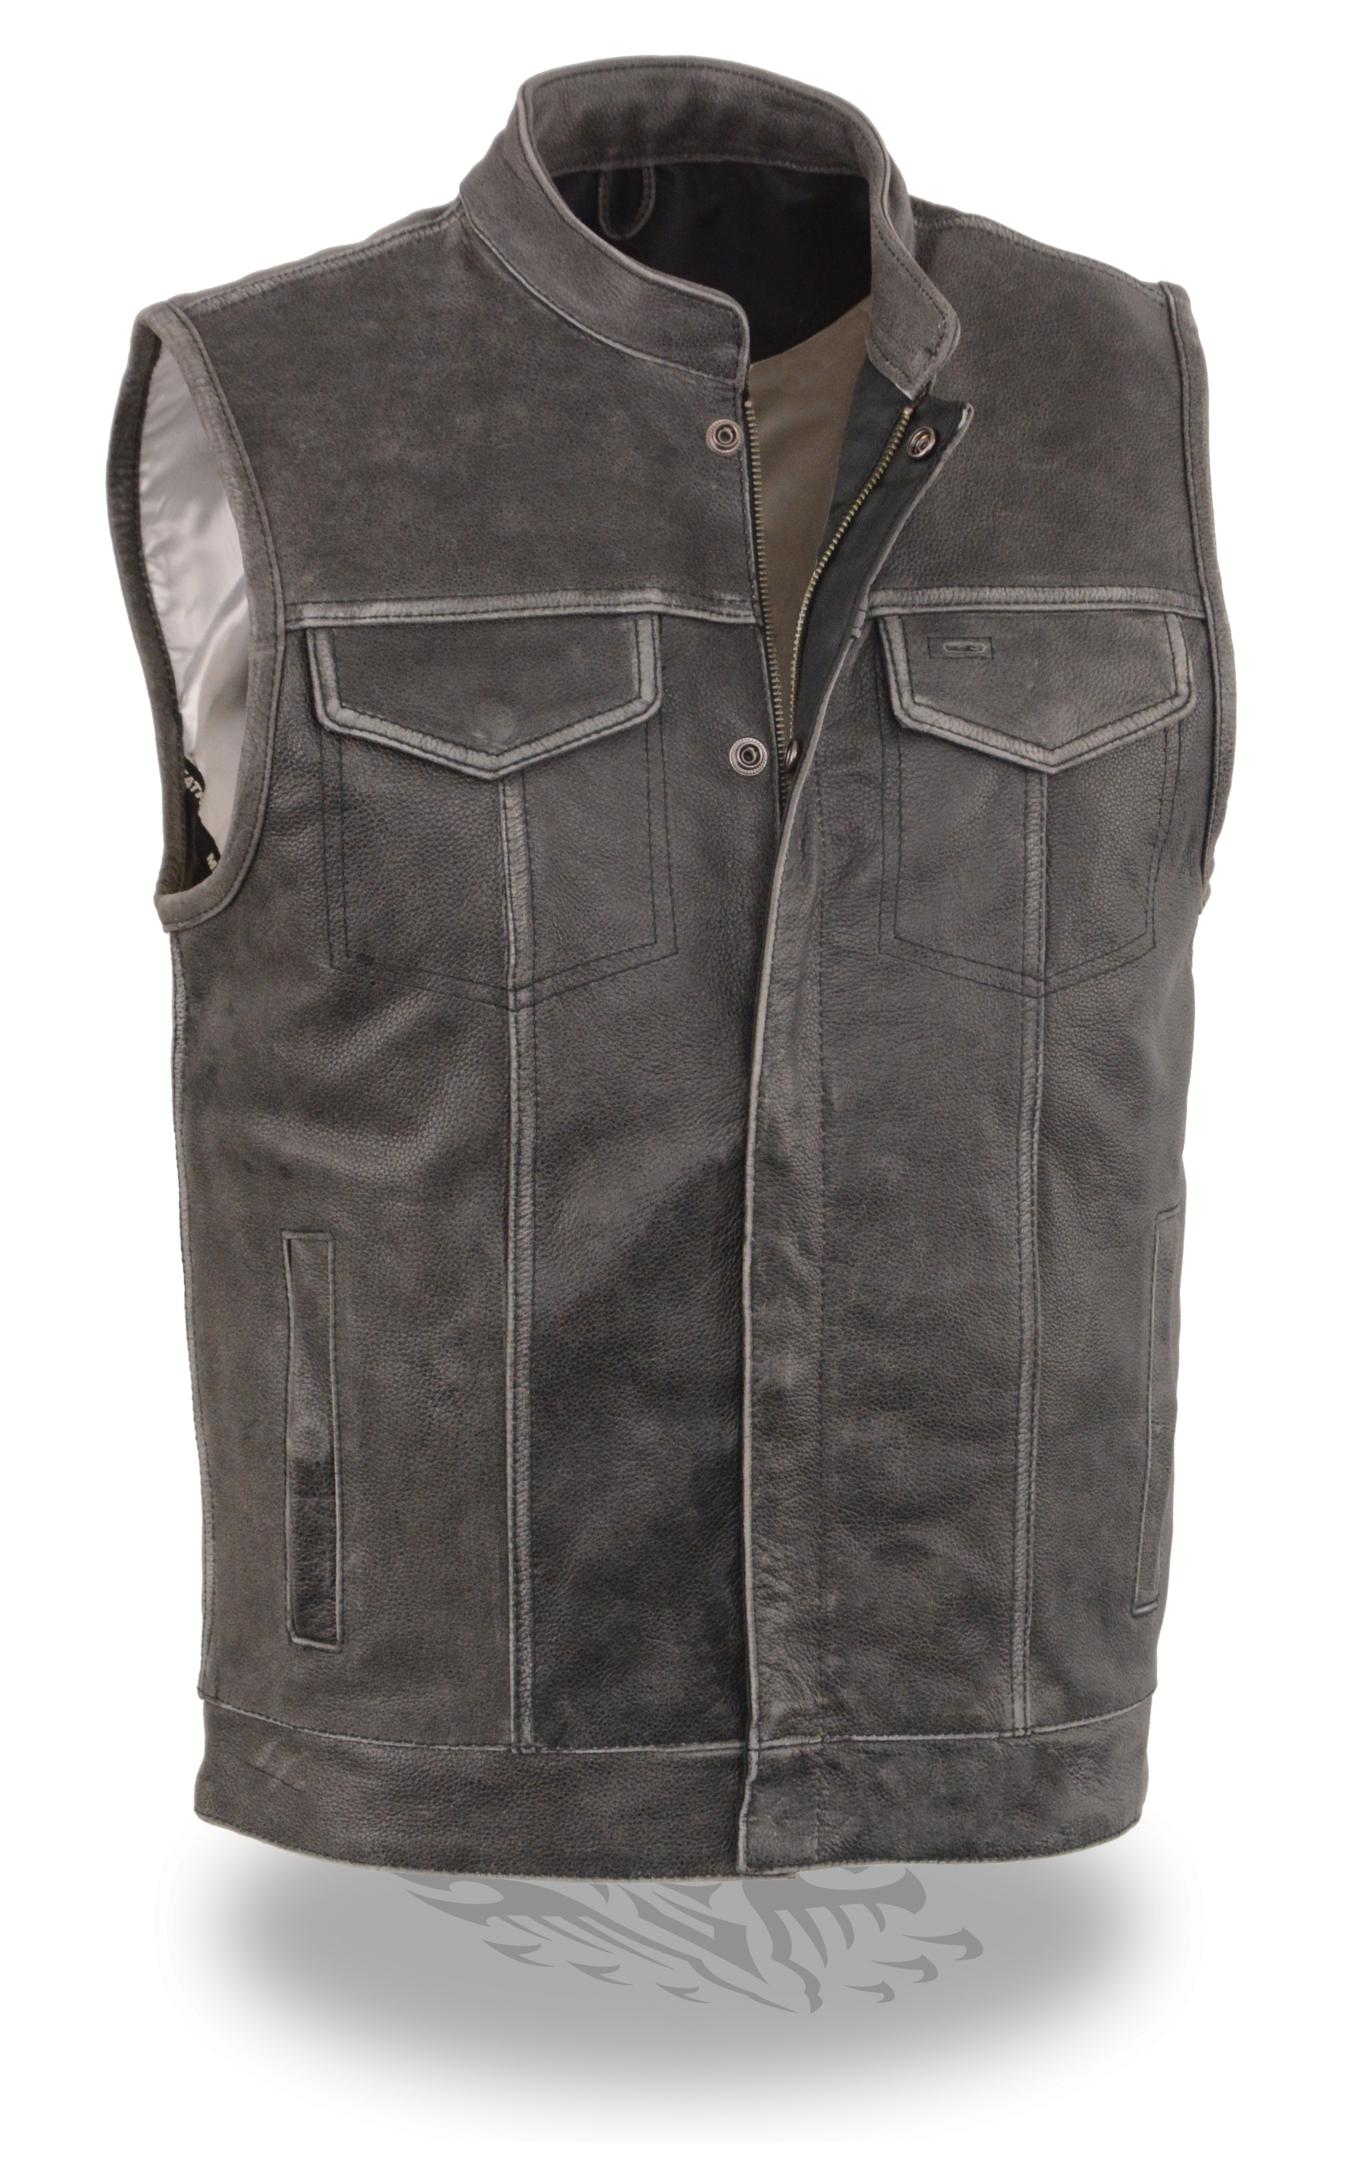 Motorcycle Vests For Additional Protection. When you are looking for a motorcycle Vests don't just settle for an average Leather vest or Denim vest. At Motorcycle house expect more from us and will deliver for your riding needs. Whether you are looking for vented Biker vests for summer or non-vented motorcycle vest. With over a hundred padded vests to protect you in case of an accident you.